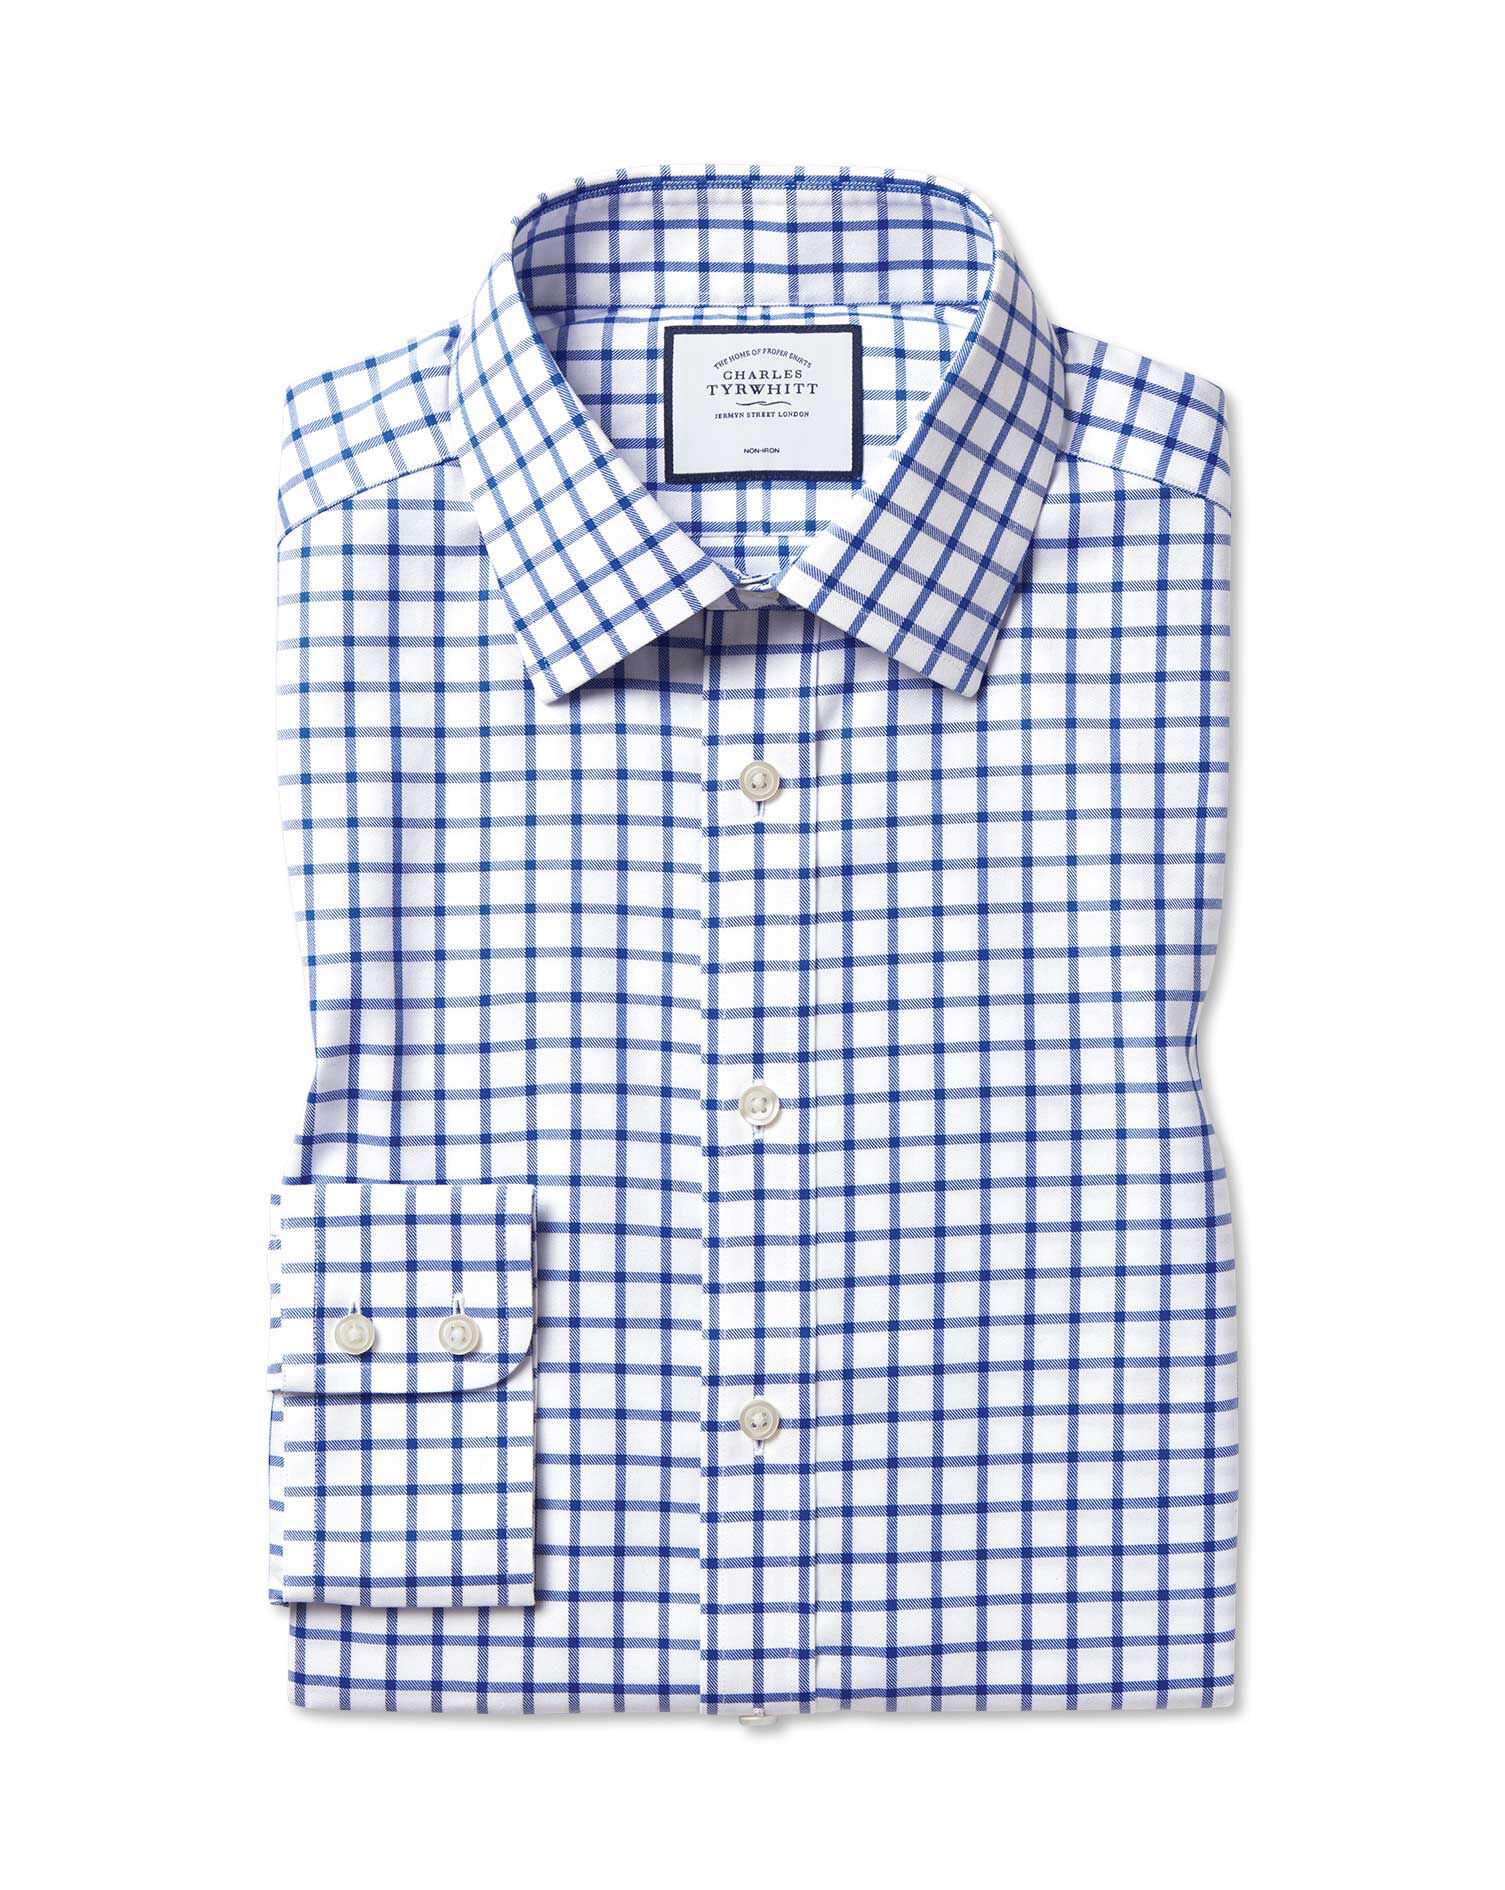 Slim Fit Non-Iron Twill Grid Check Royal Blue Cotton Formal Shirt Double Cuff Size 17/35 by Charles